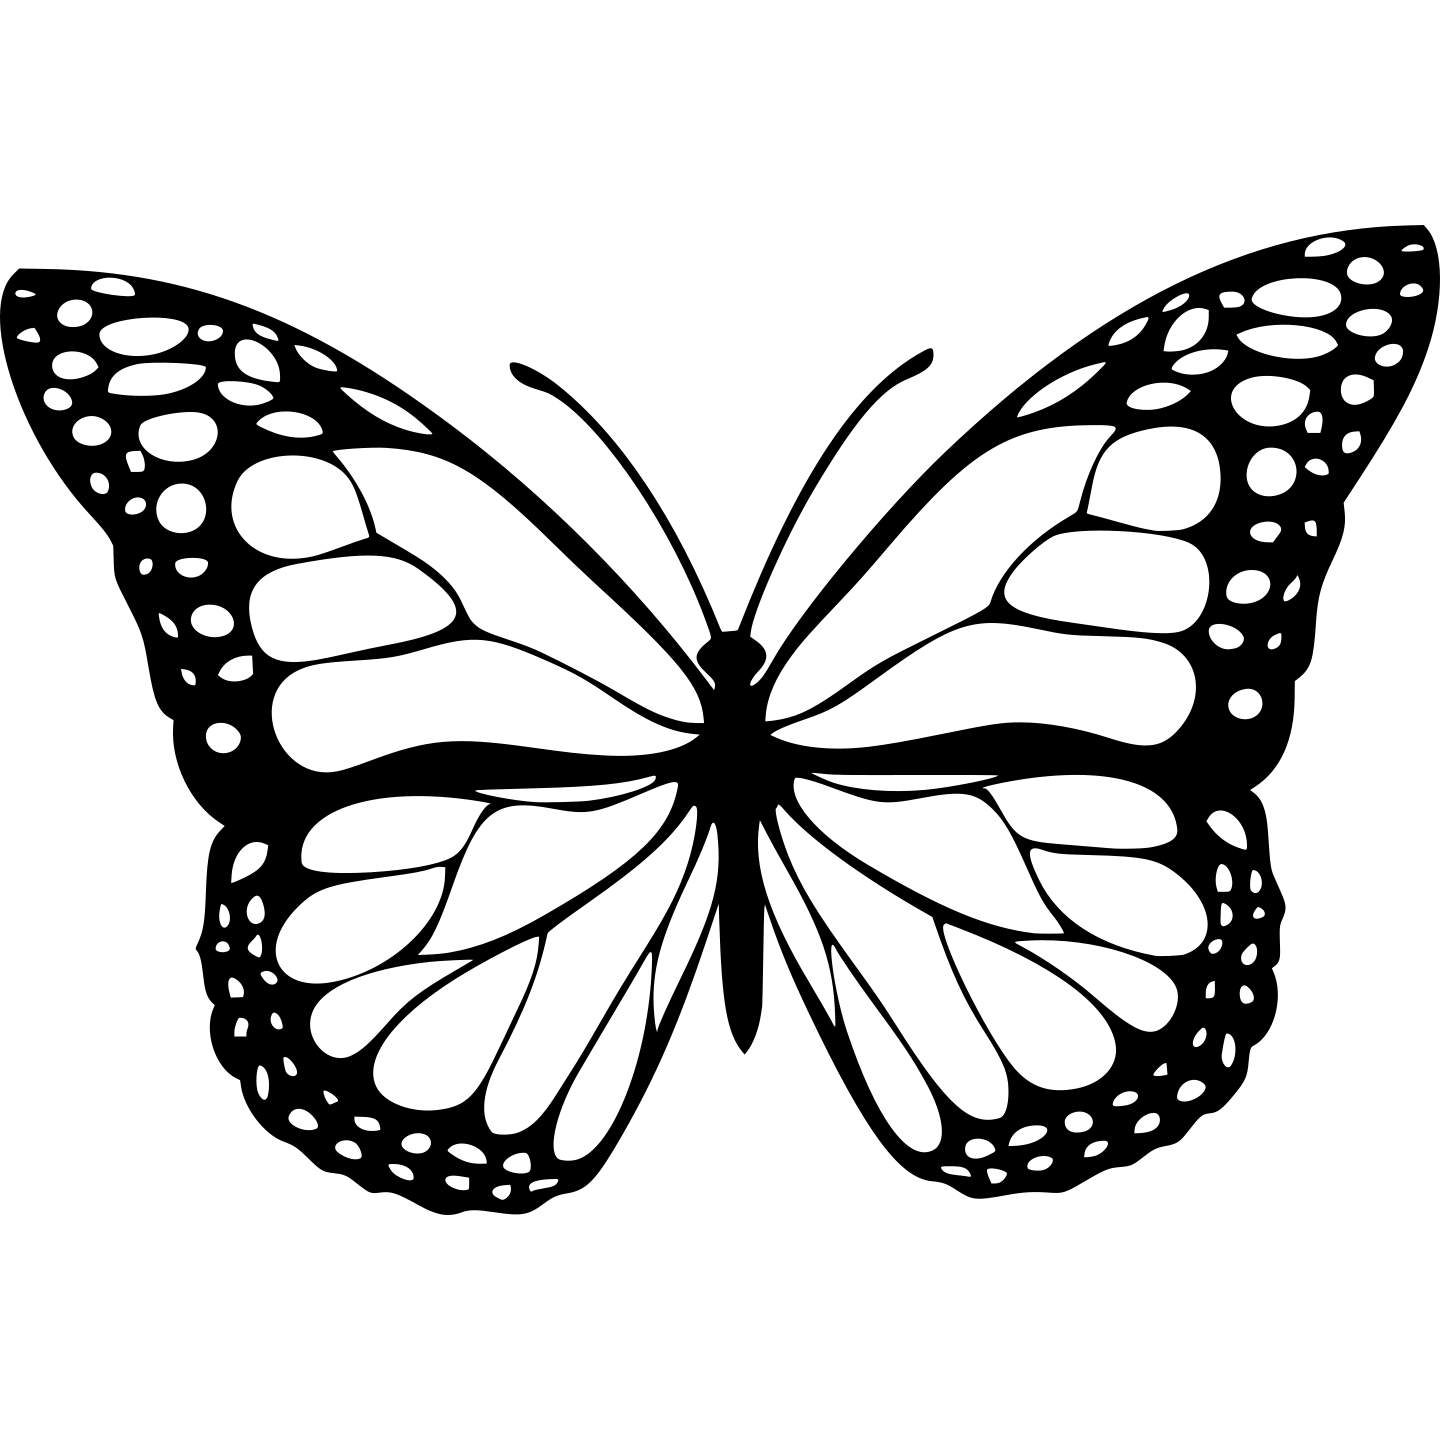 Butterfly1Black.png Download free STL file Monarch Butterfly • 3D print design, oasisk